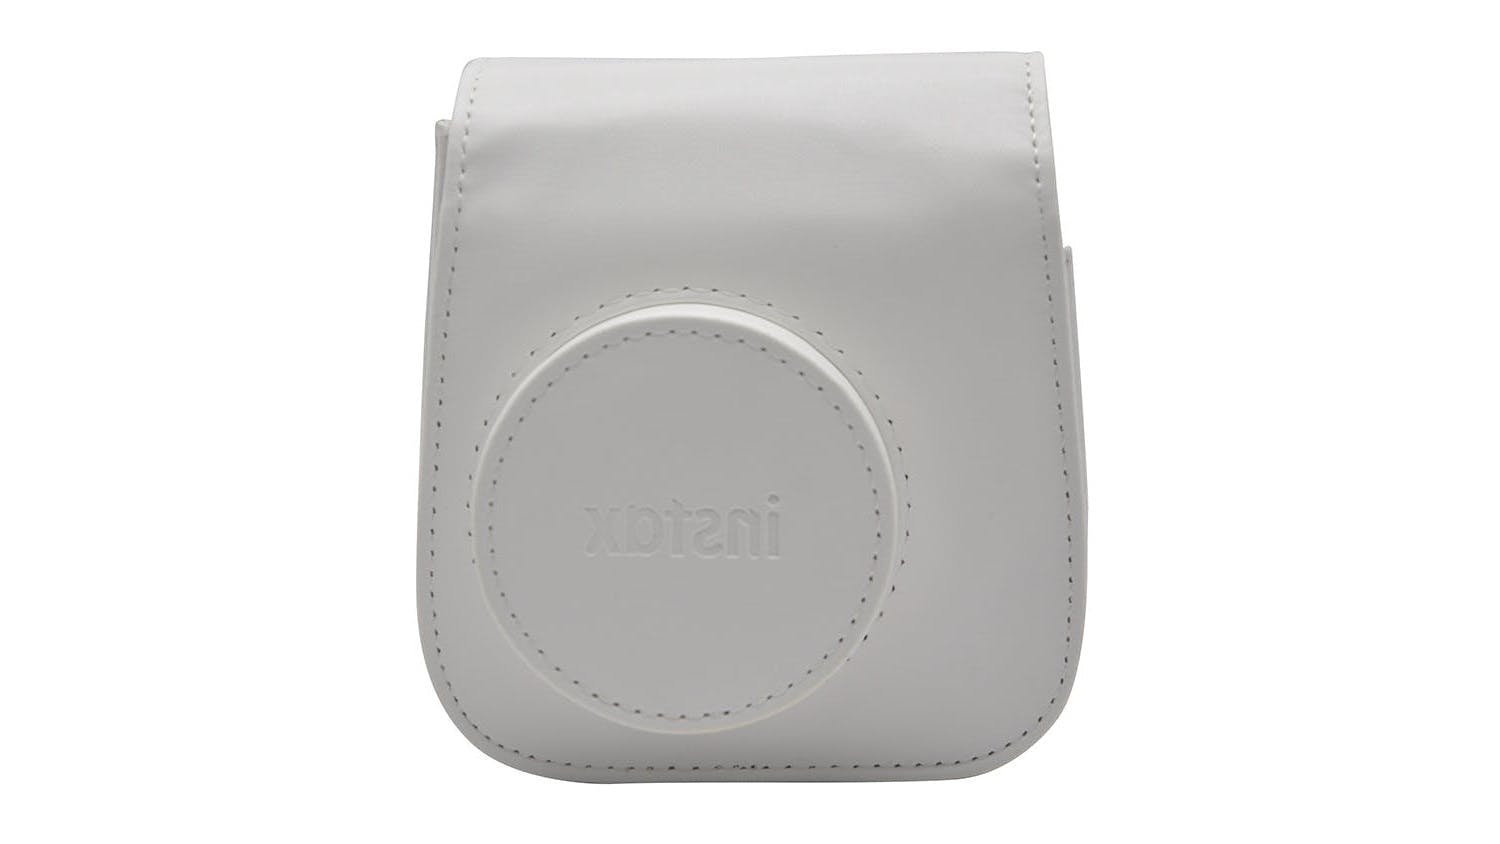 Instax Mini 11 Case - White